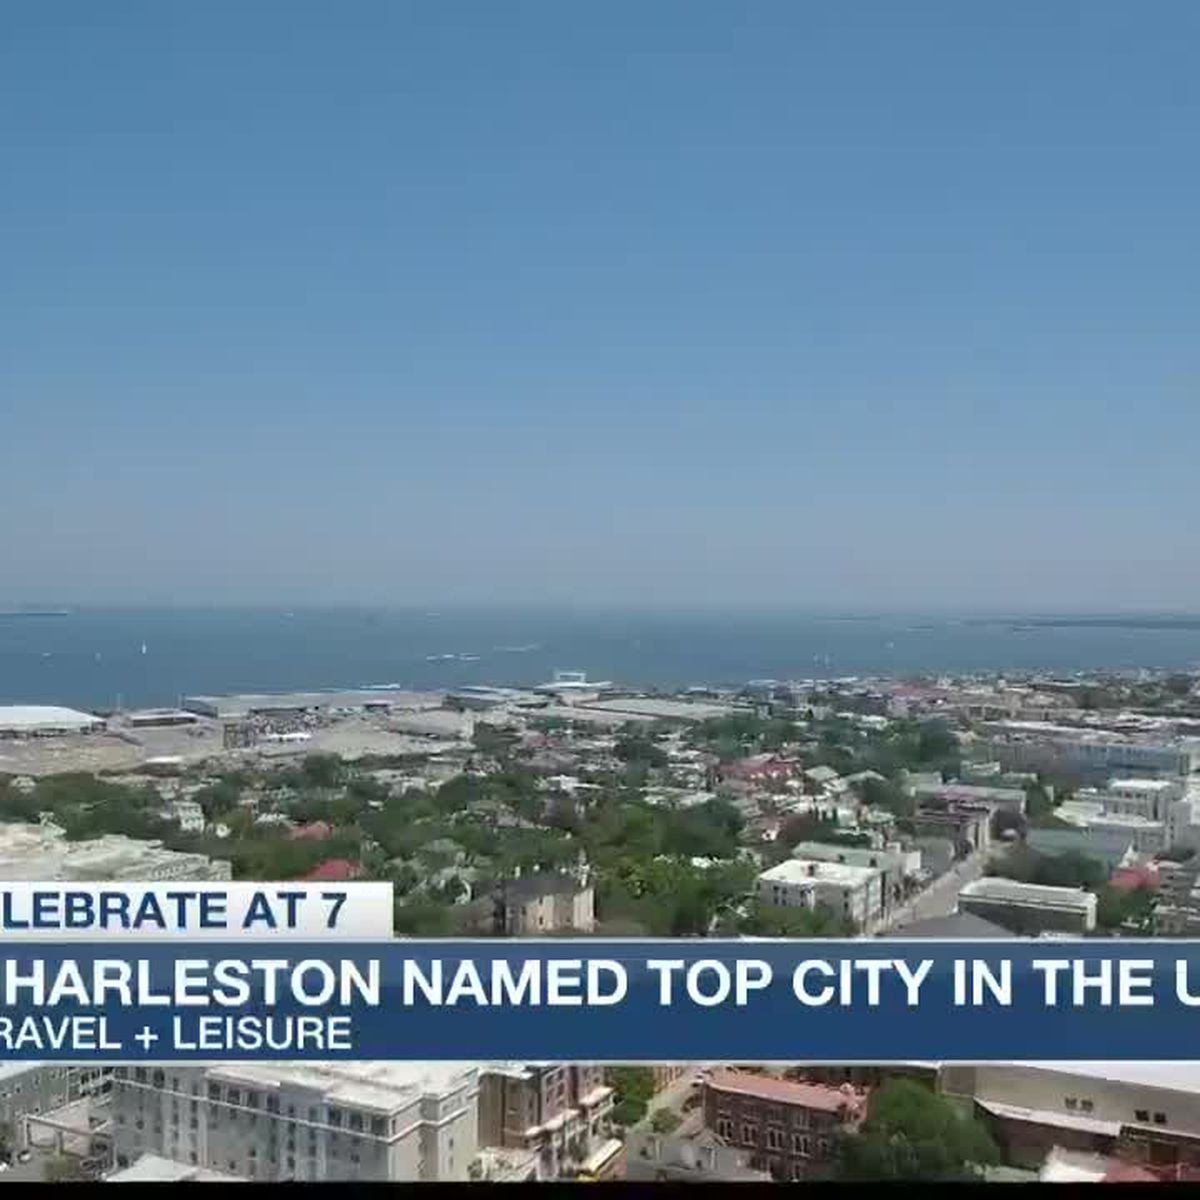 Charleston places first in top cities in U.S. in 'Travel + Leisure' World's Best Awards survey